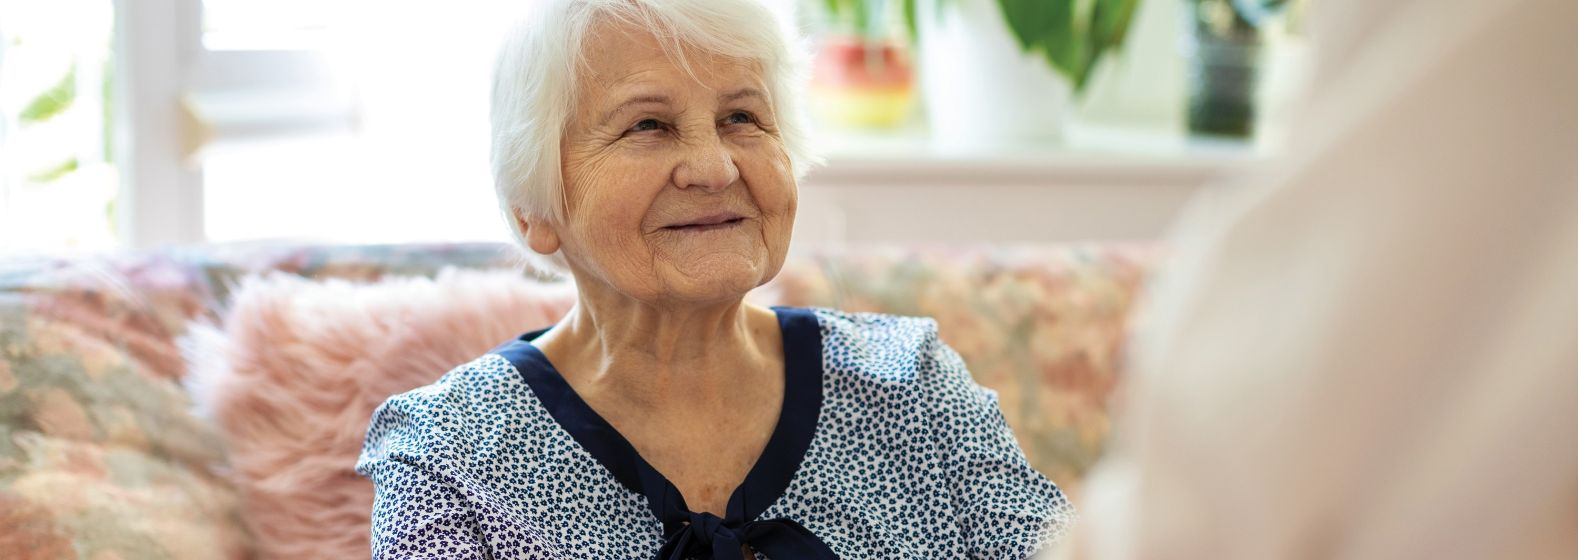 health services for seniors